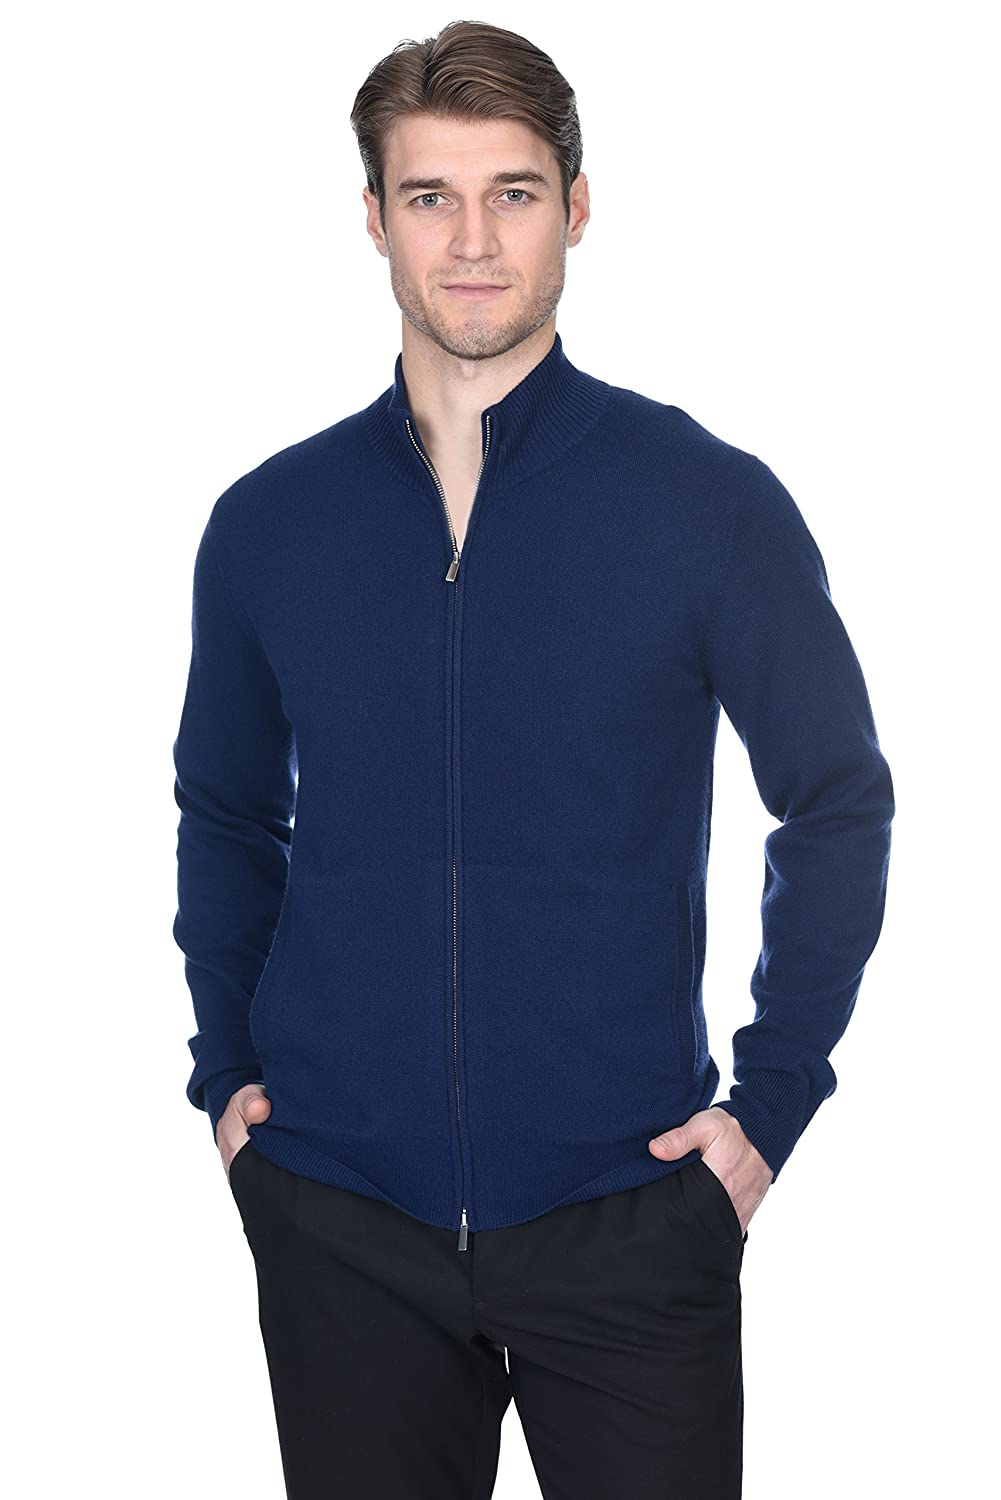 State Fusio Men's Cashmere Wool Full-Zip Mock Neck Sweater Premium Quality